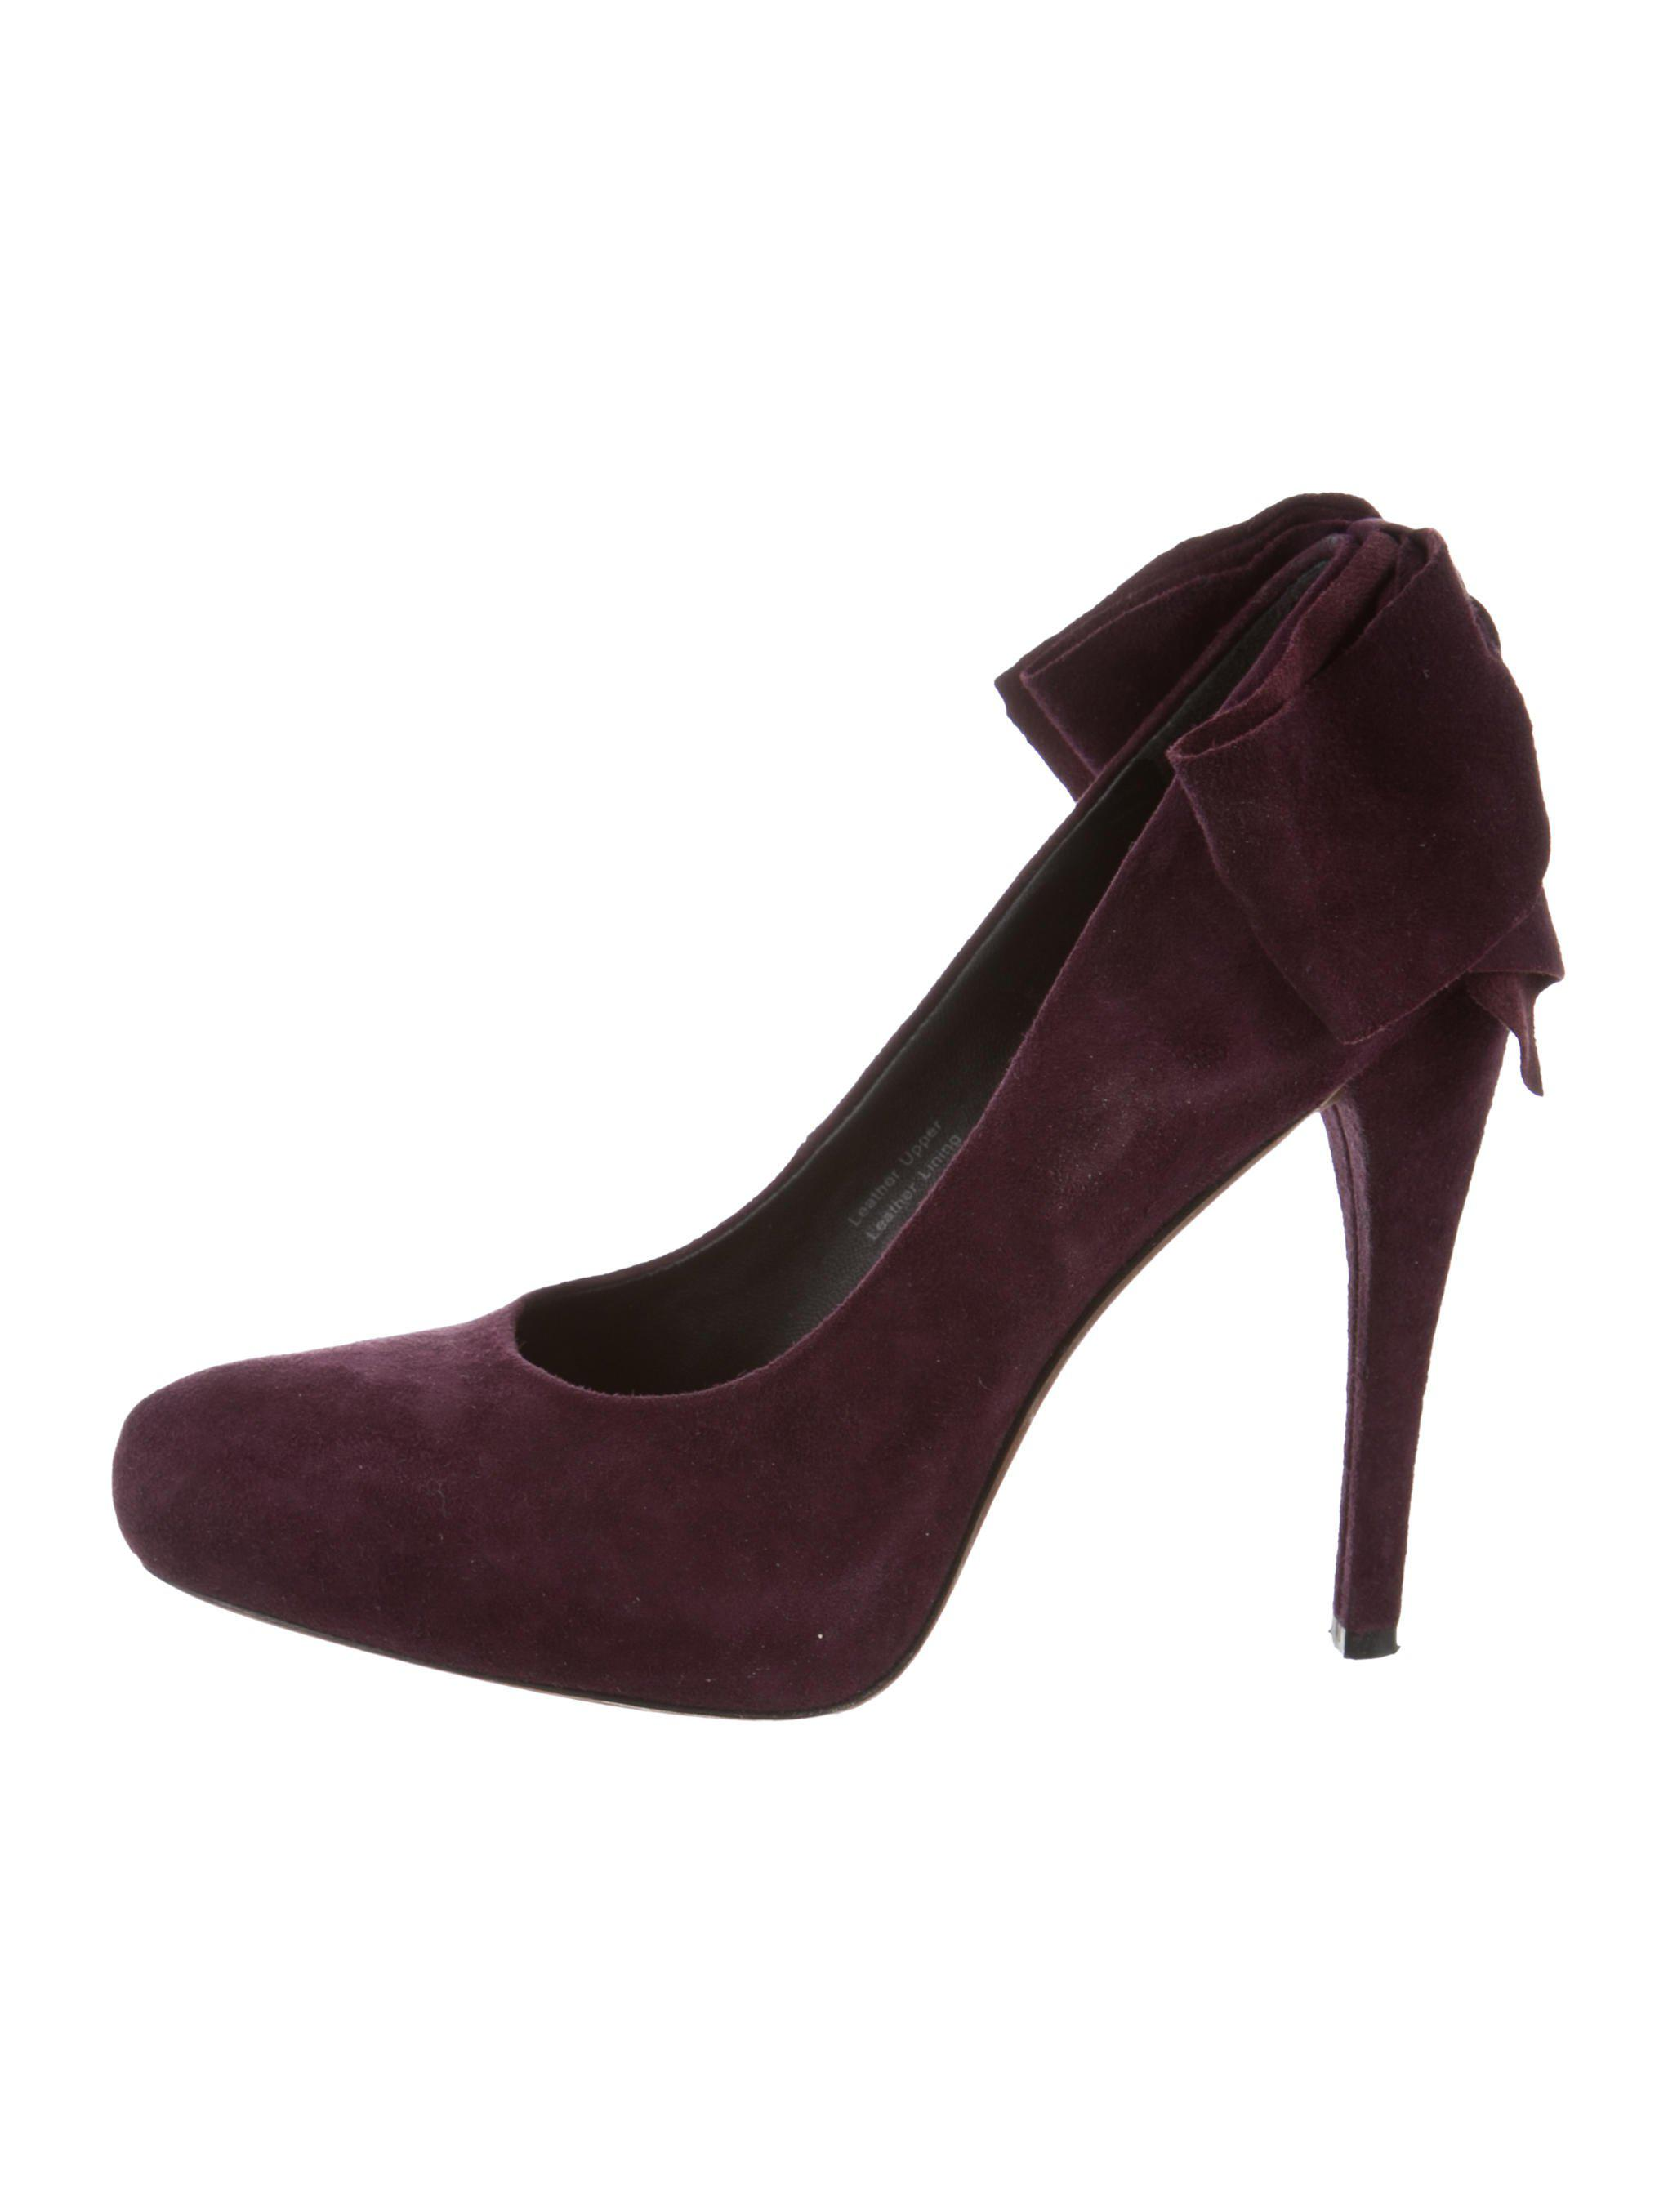 clearance low shipping get authentic cheap online Vera Wang Leather Bow Pumps reliable pick a best sale online qhLplOyRwt